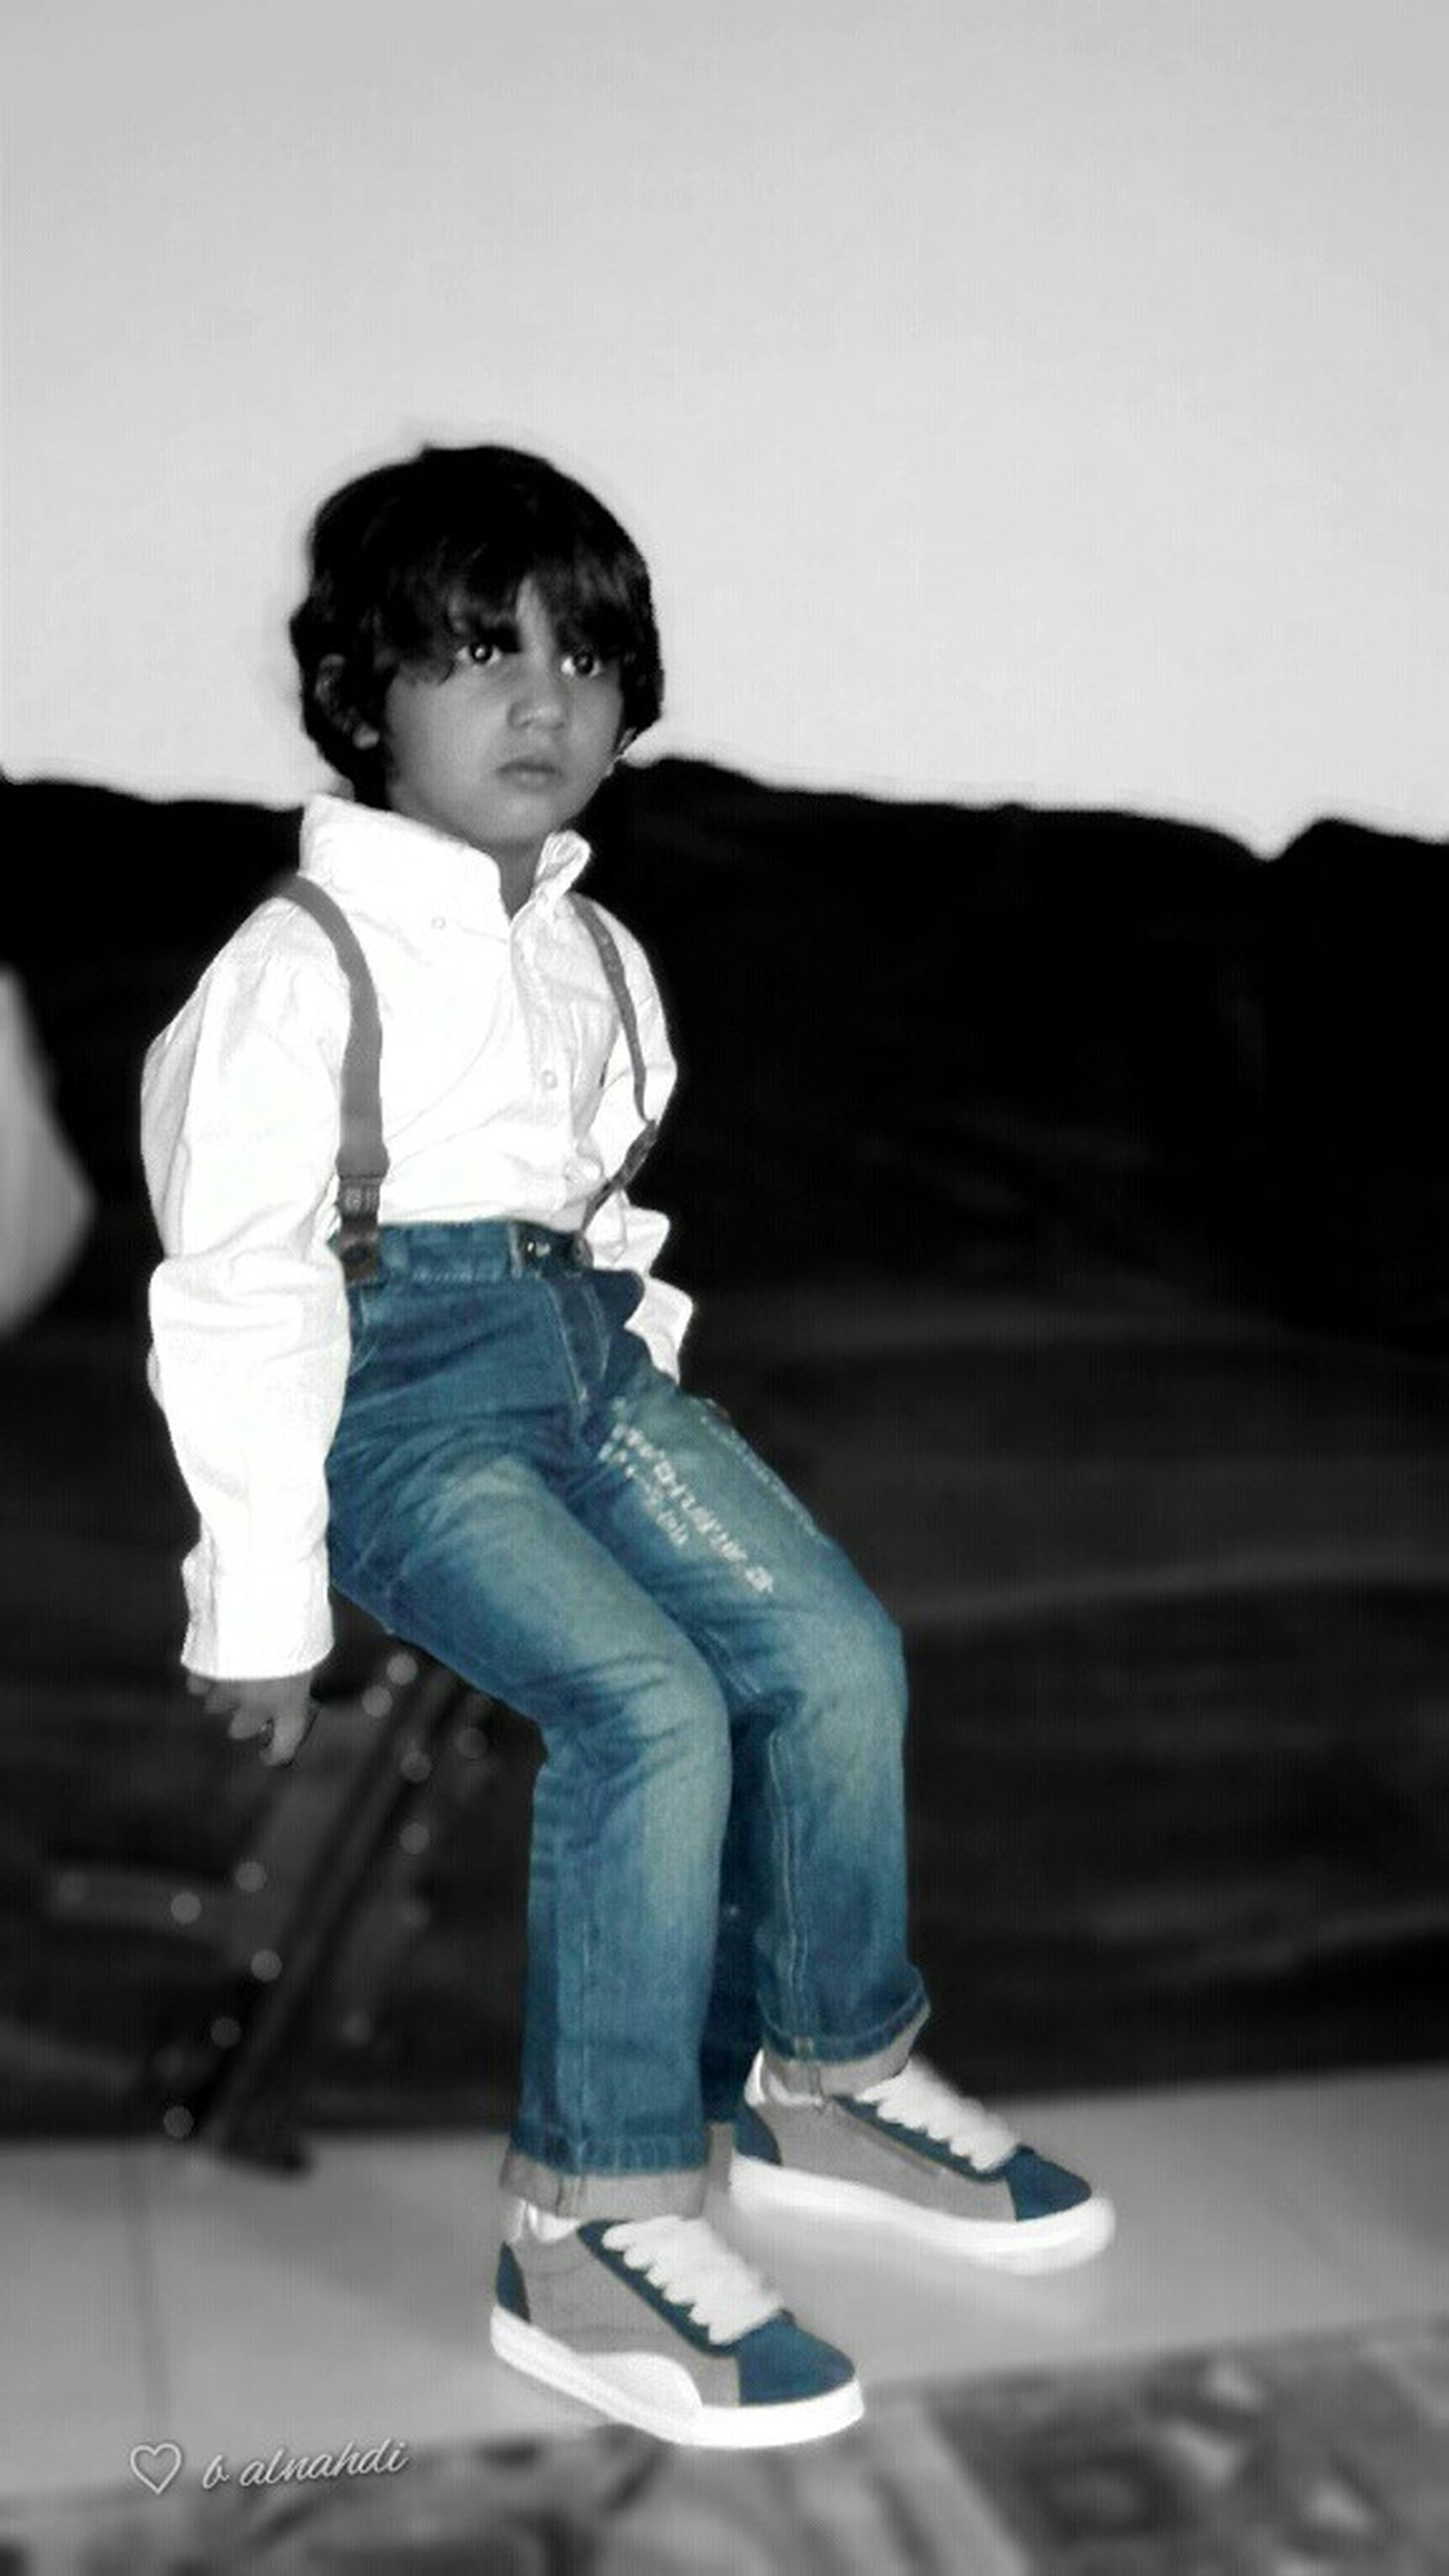 casual clothing, lifestyles, full length, childhood, person, leisure activity, elementary age, boys, indoors, three quarter length, standing, sitting, girls, innocence, front view, side view, young adult, focus on foreground